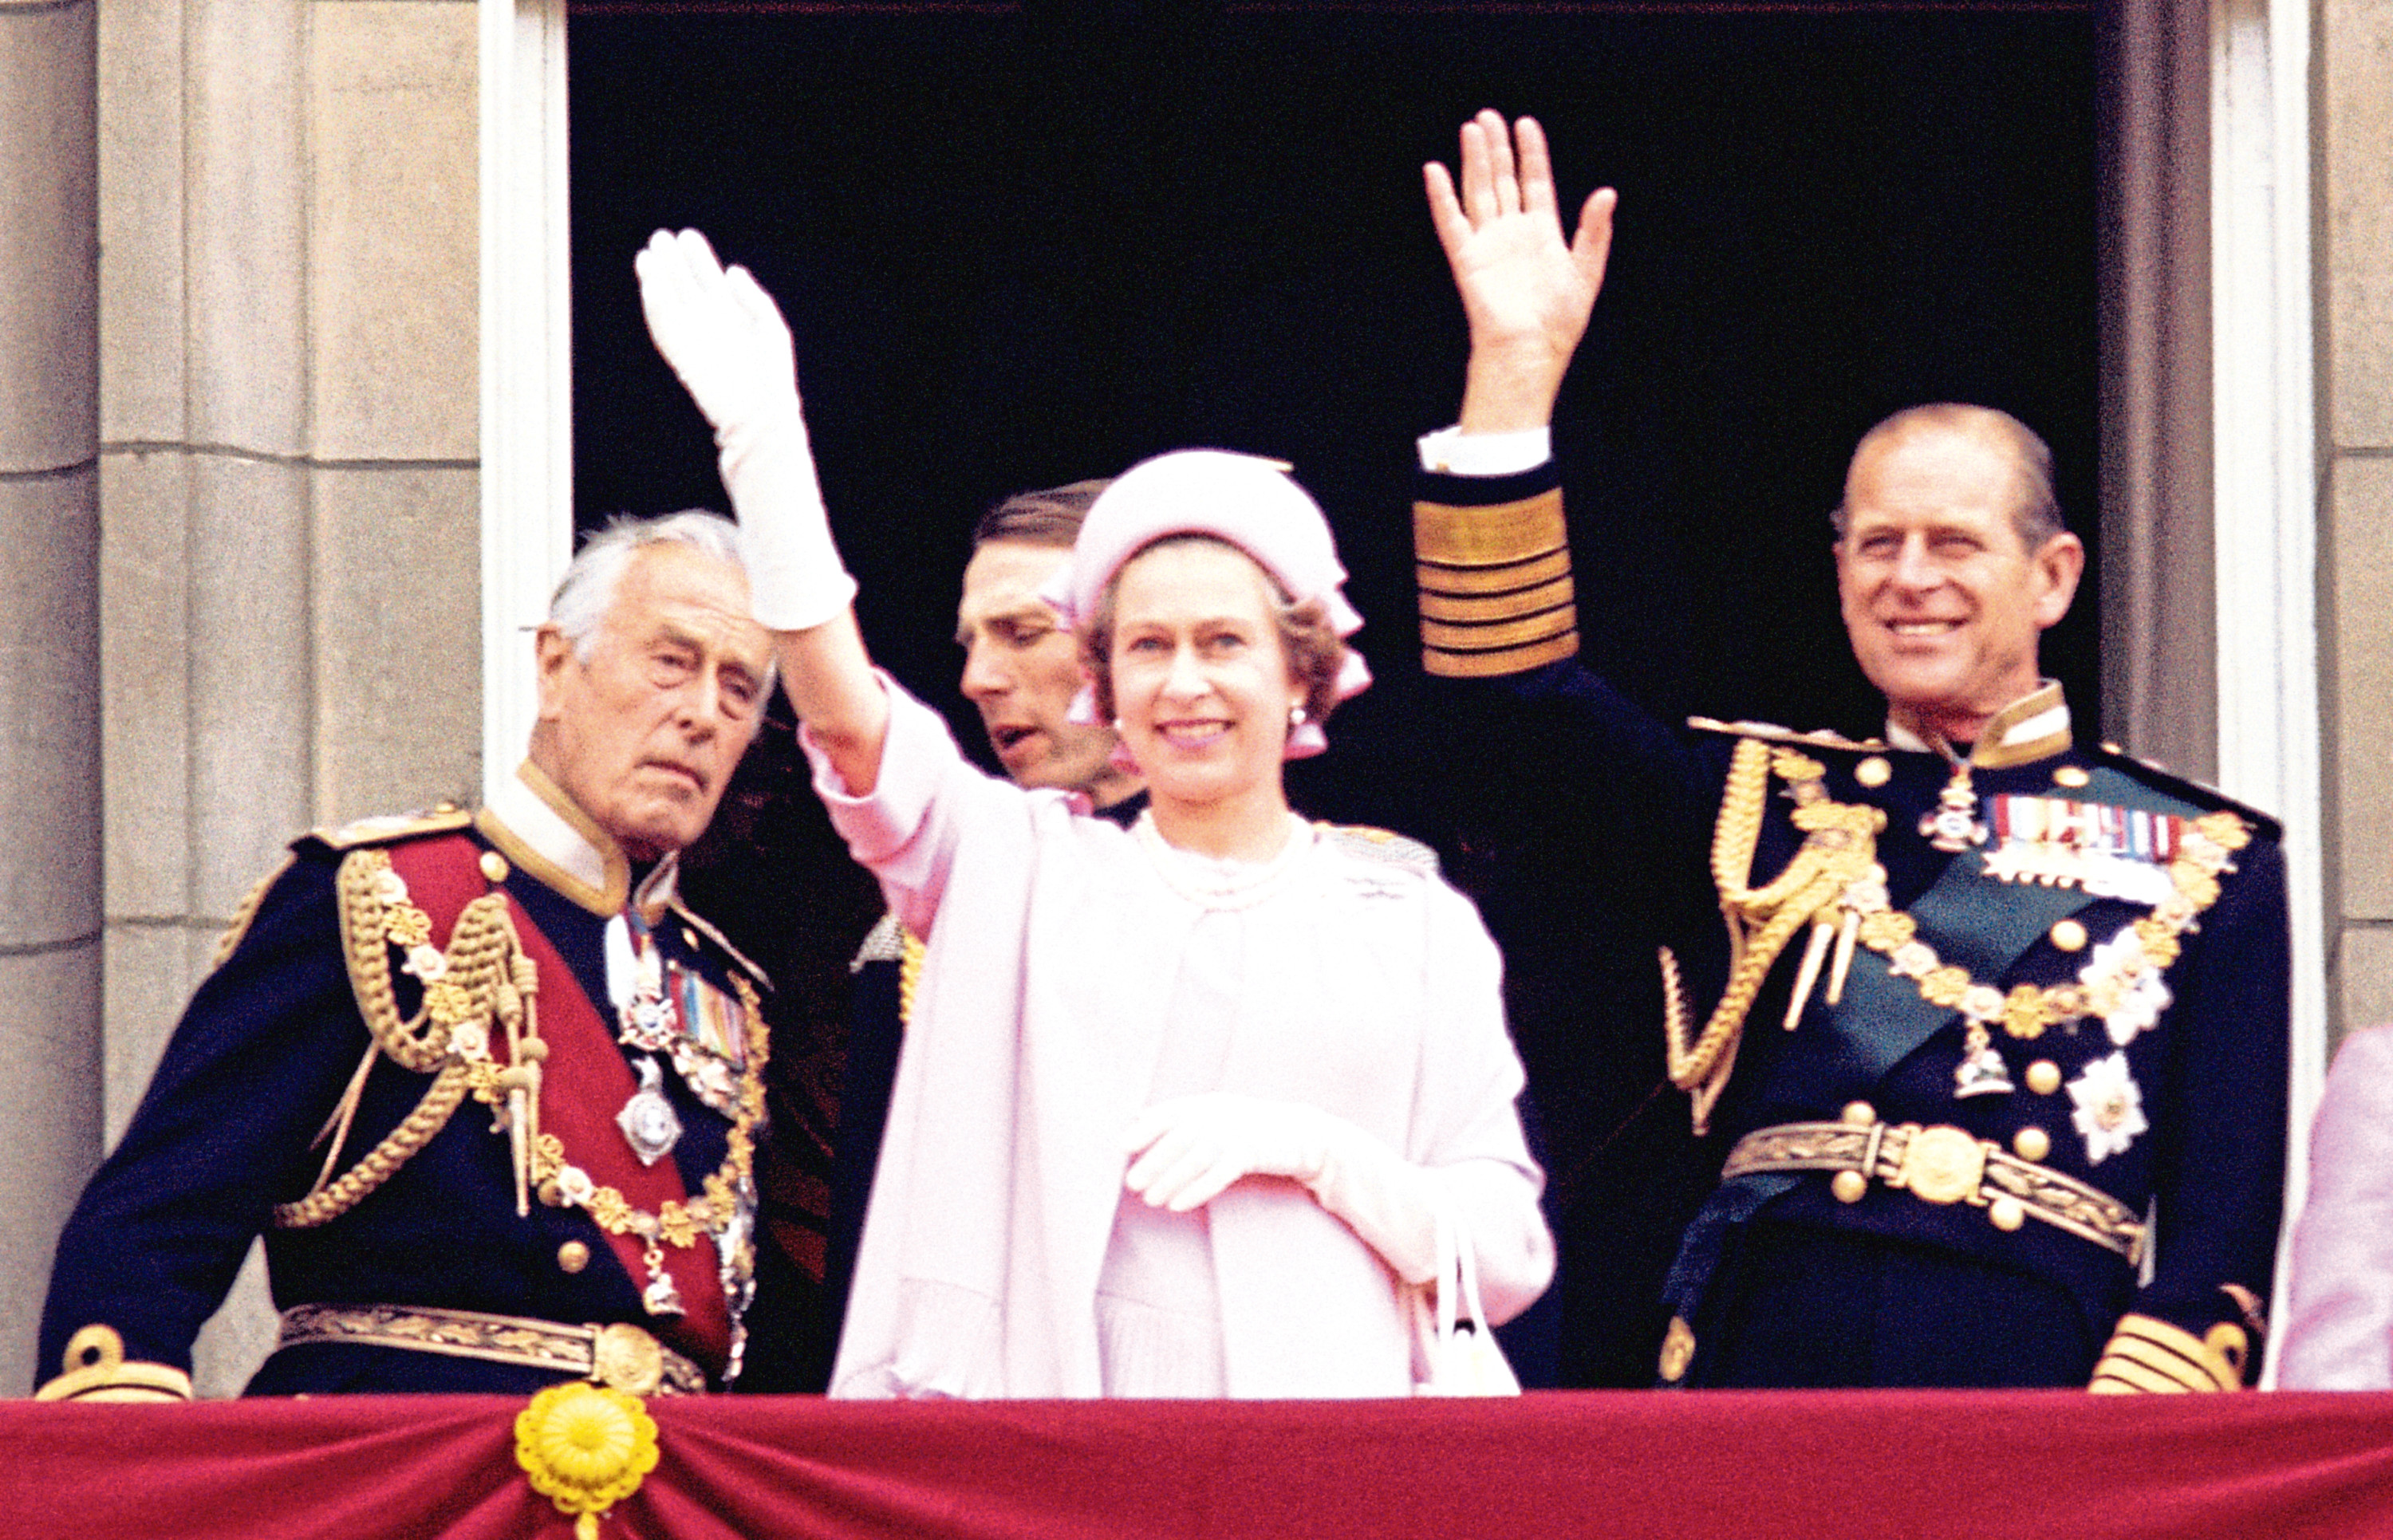 Lord Mountbatten, left, with the Queen and the Duke of Edinburgh in 1977